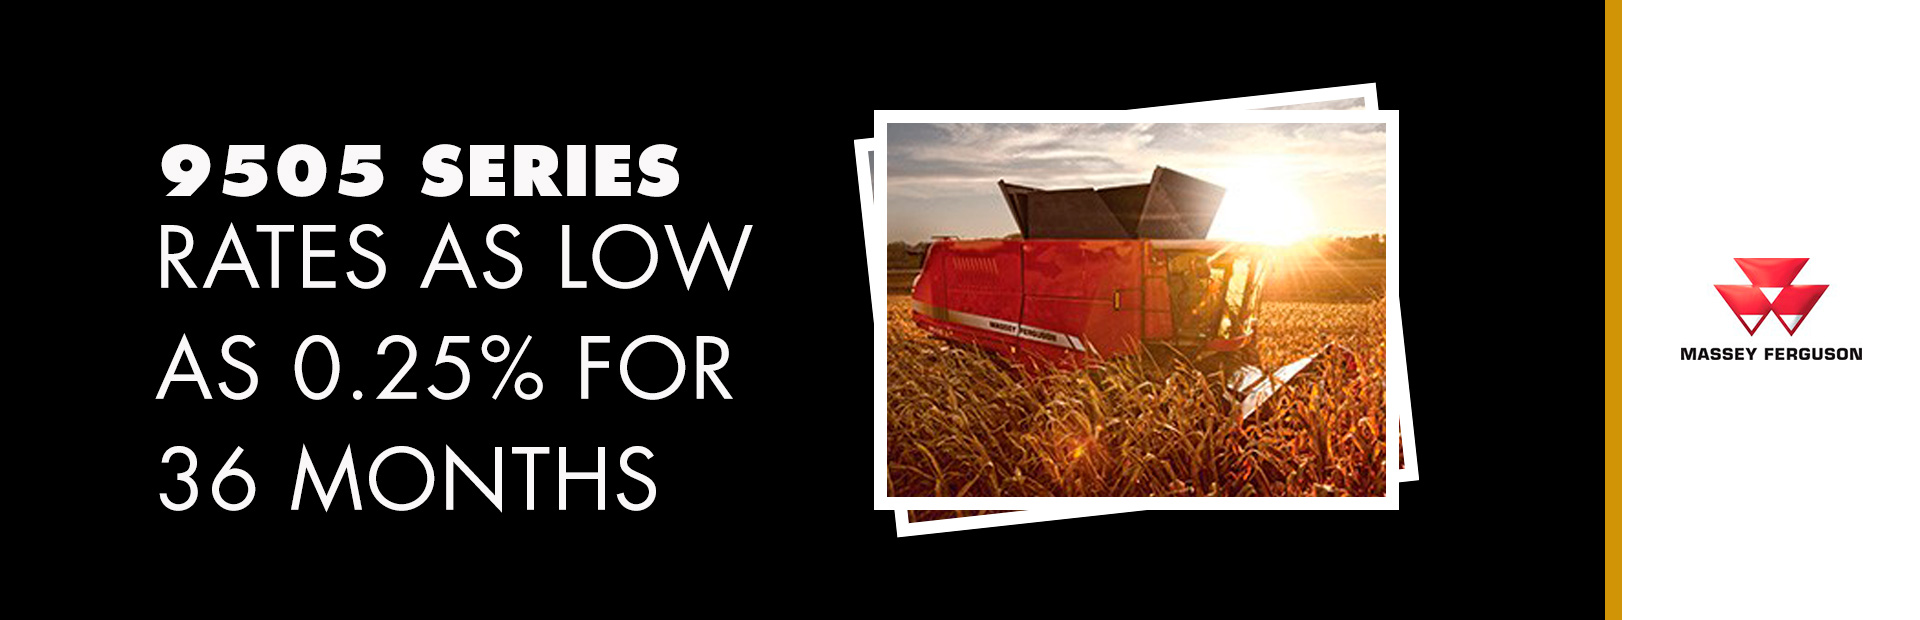 Massey Ferguson: 9505 Series - Rates as low as 0.25% for 36 Months